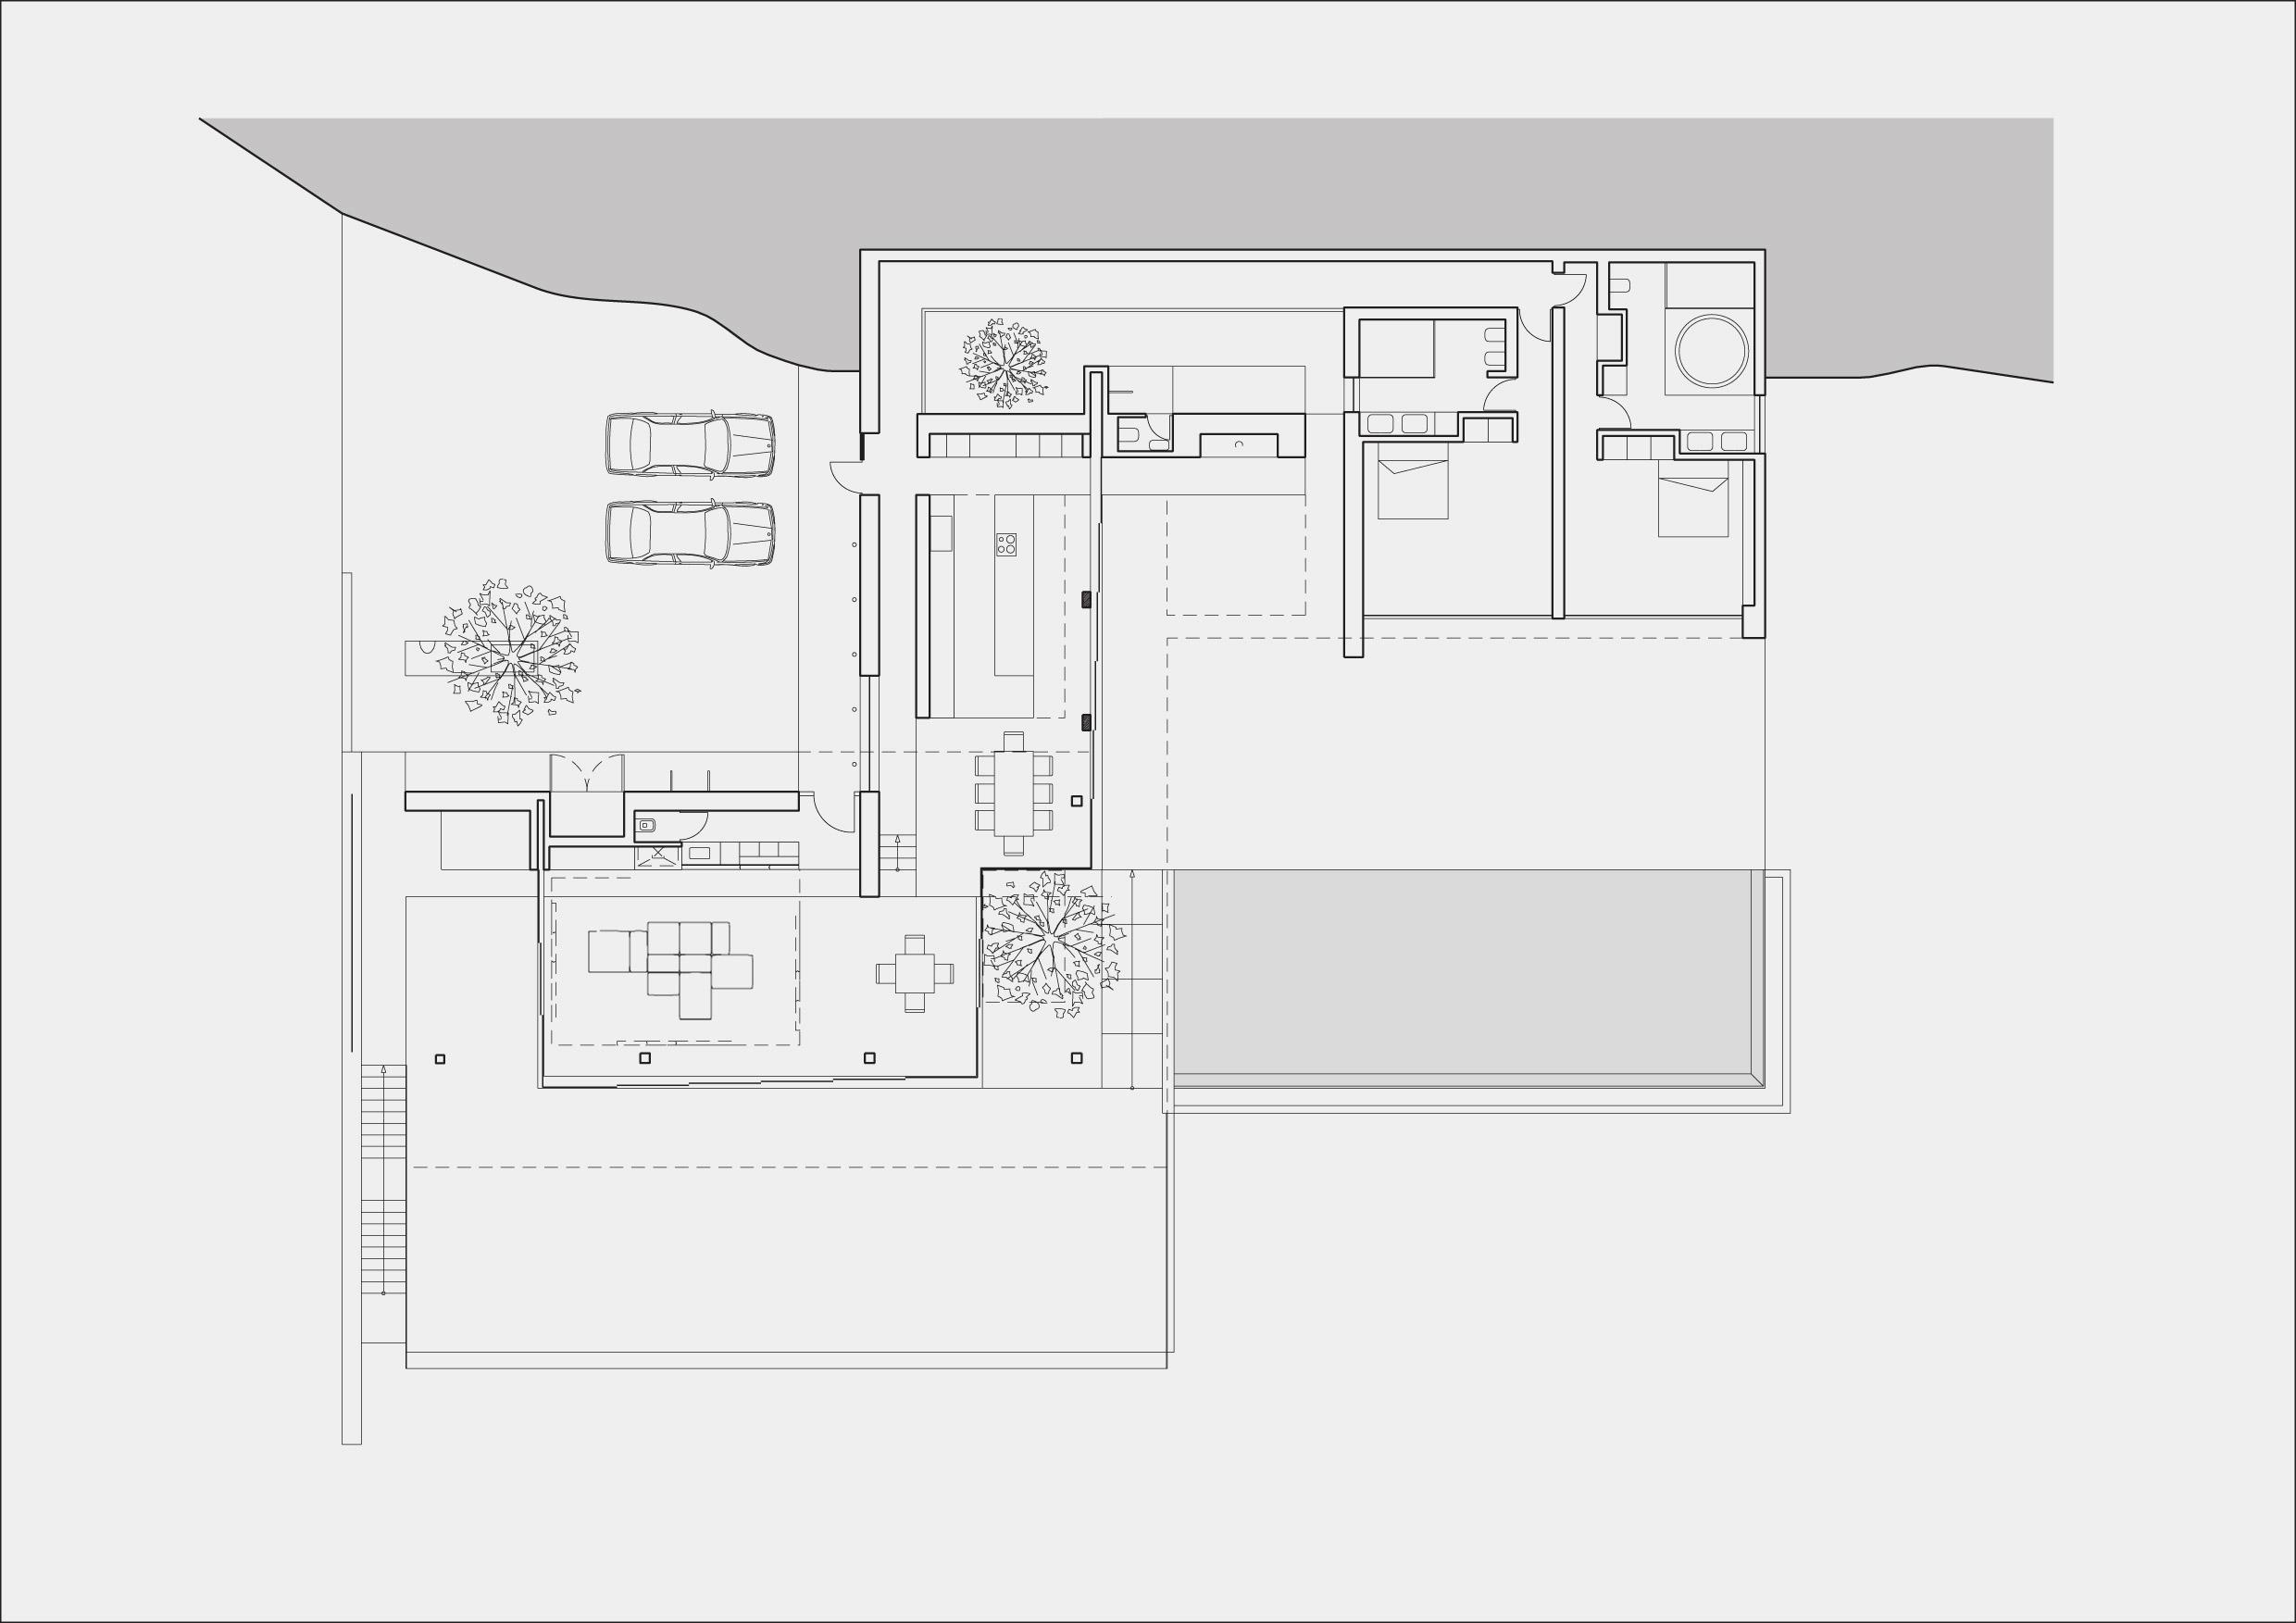 k-studio_planehouse_plan1